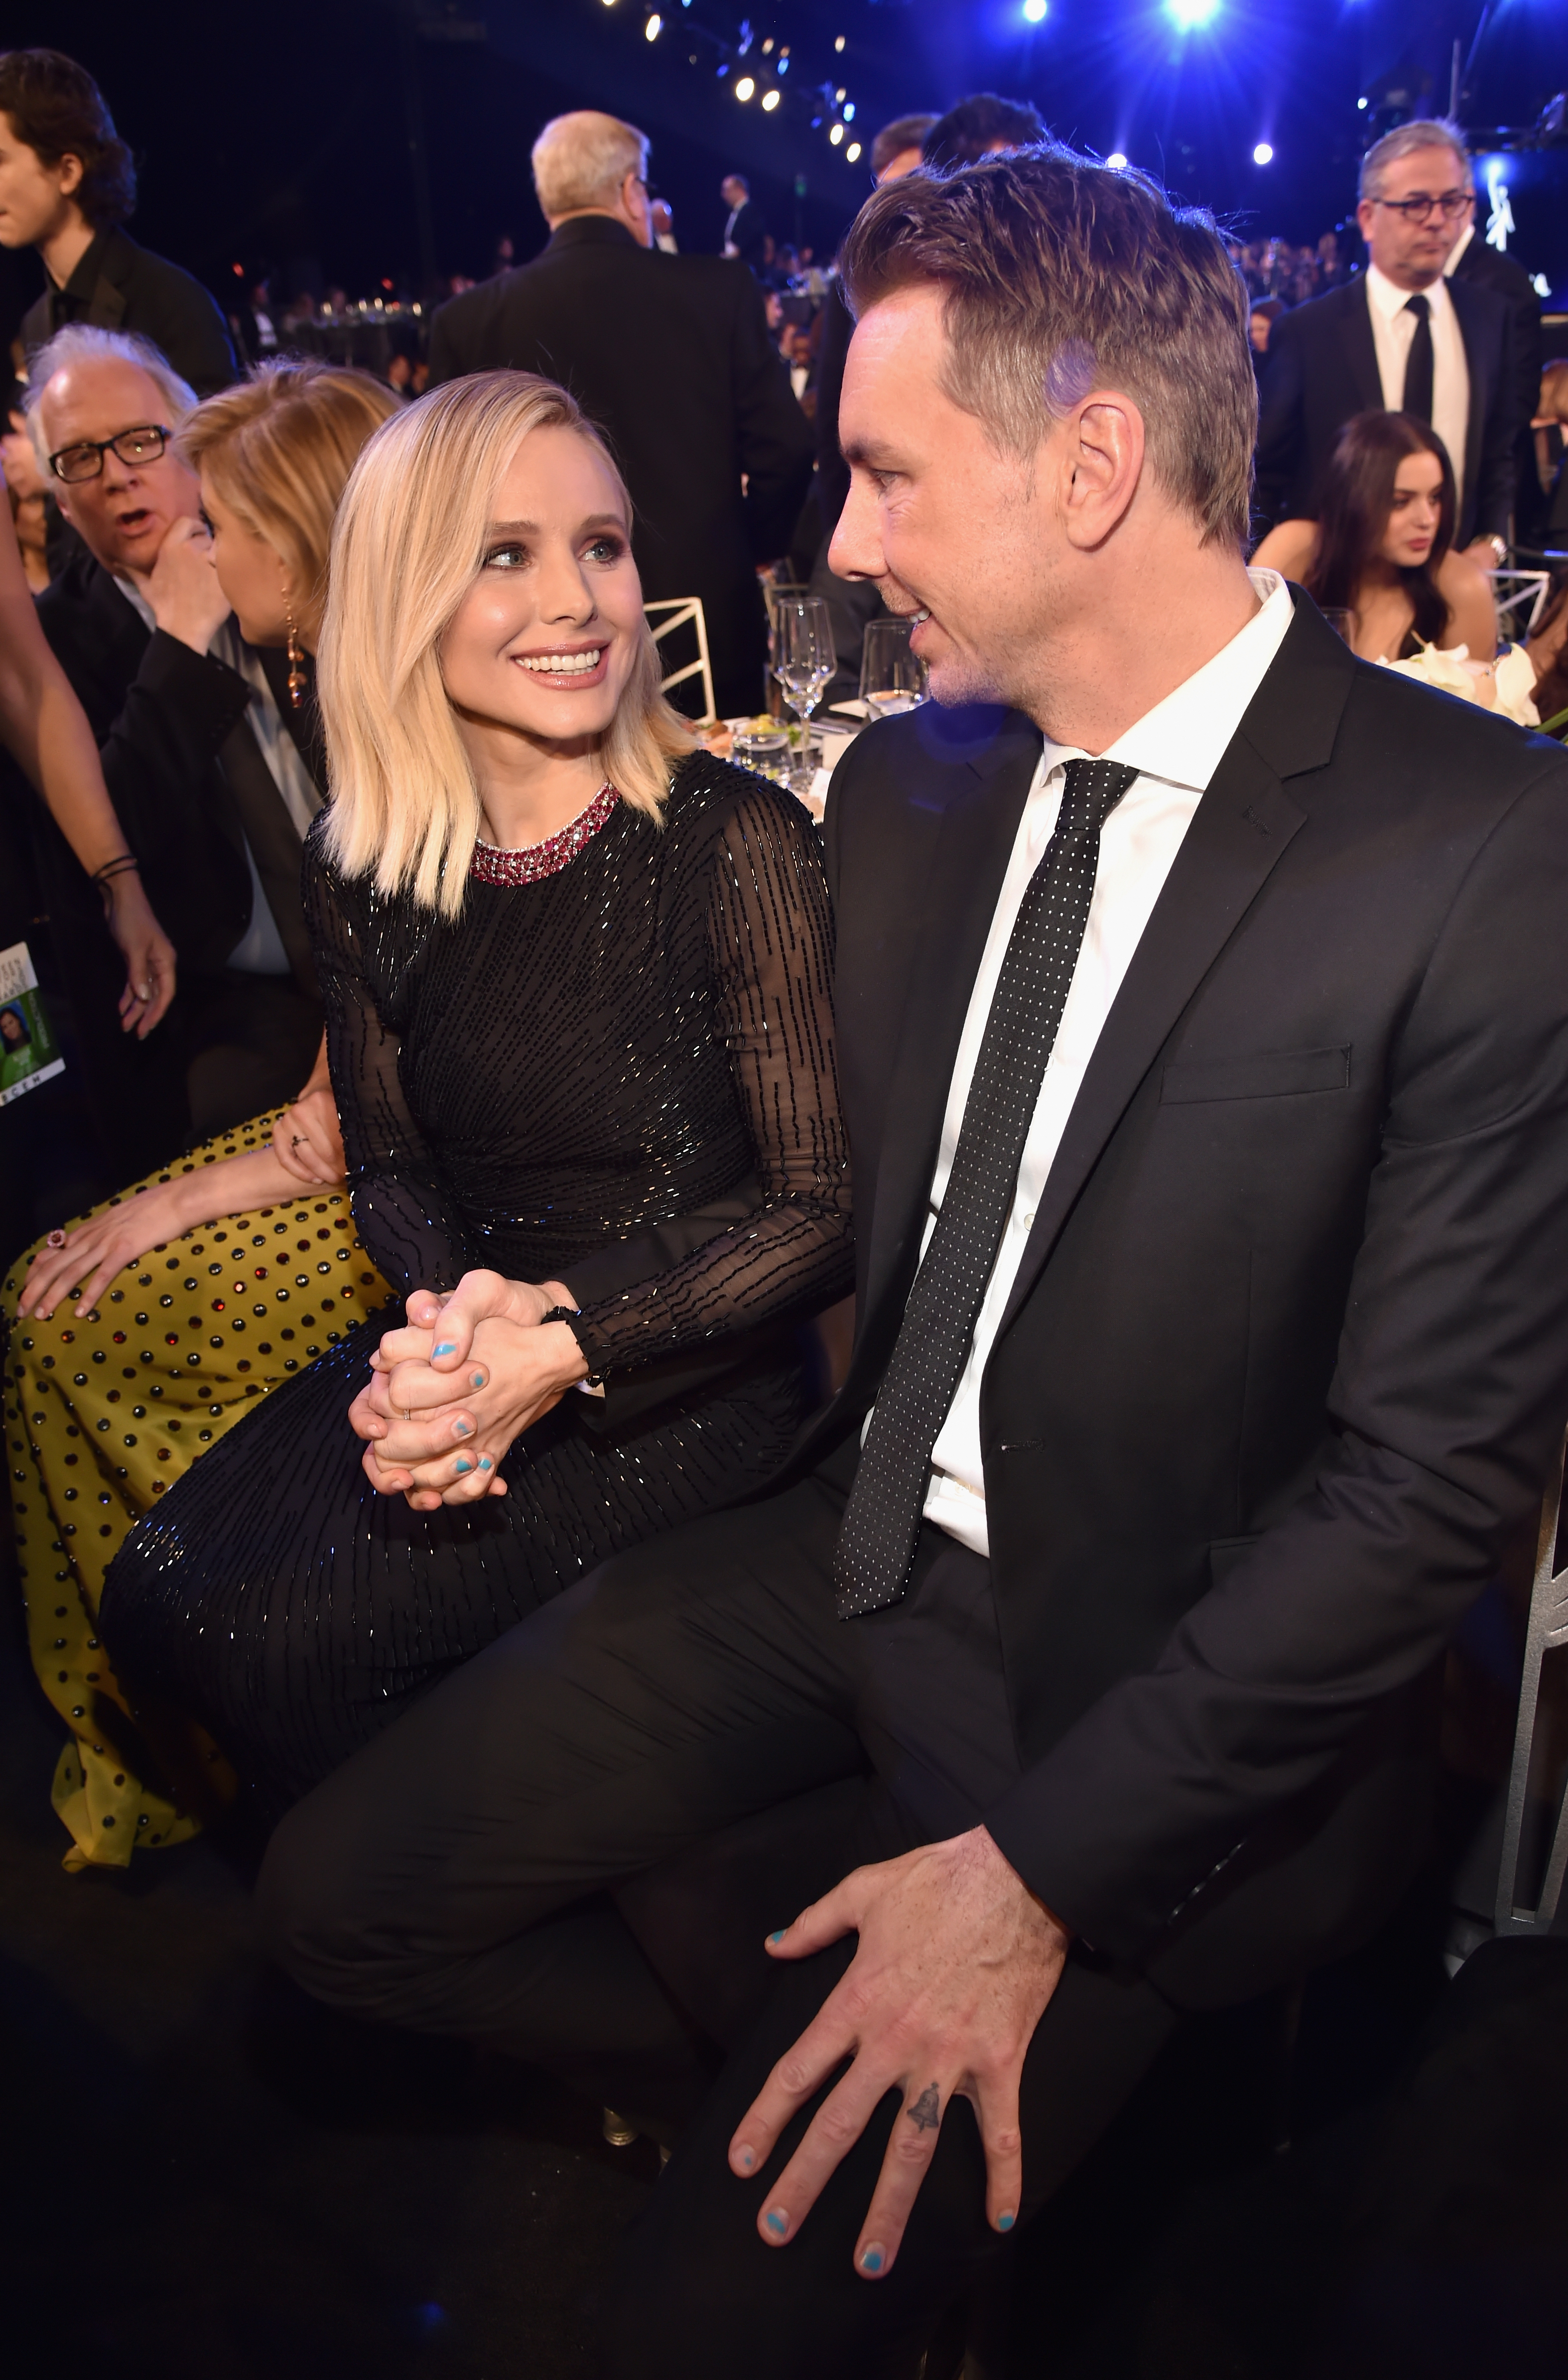 Kristen Bell Walked The Red Carpet Solo Without Husband